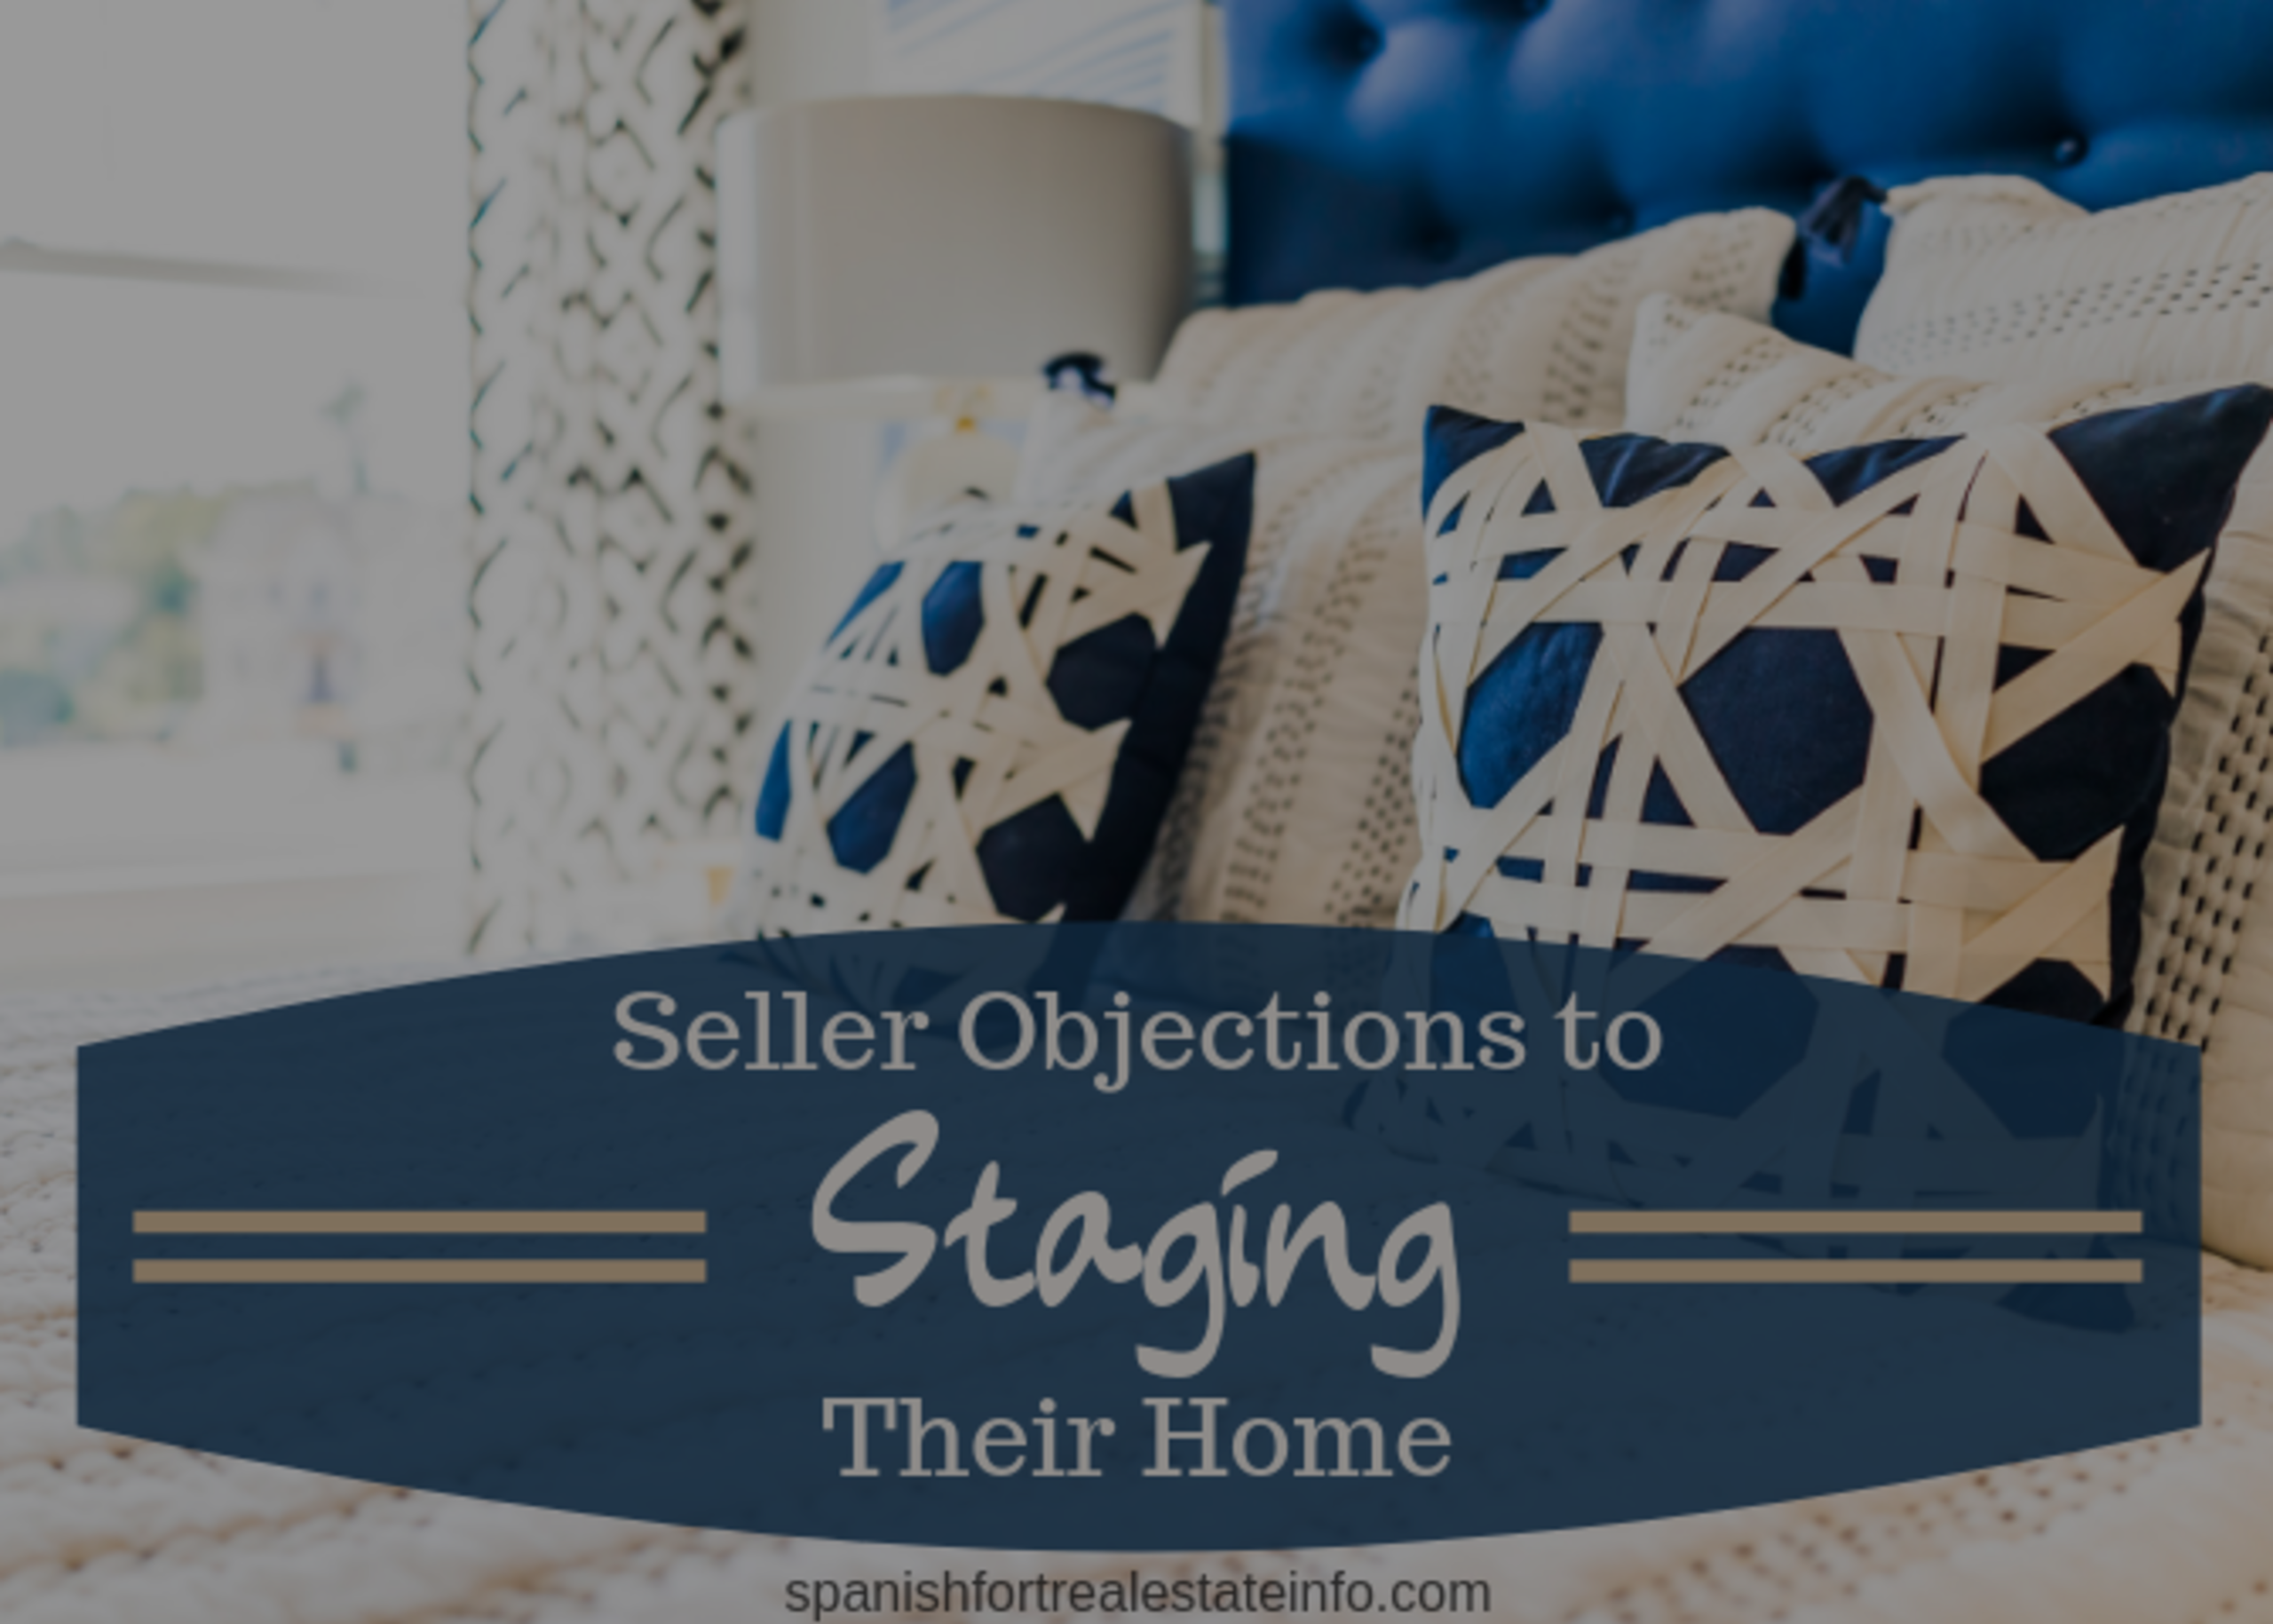 Seller Objections to Staging Their Home